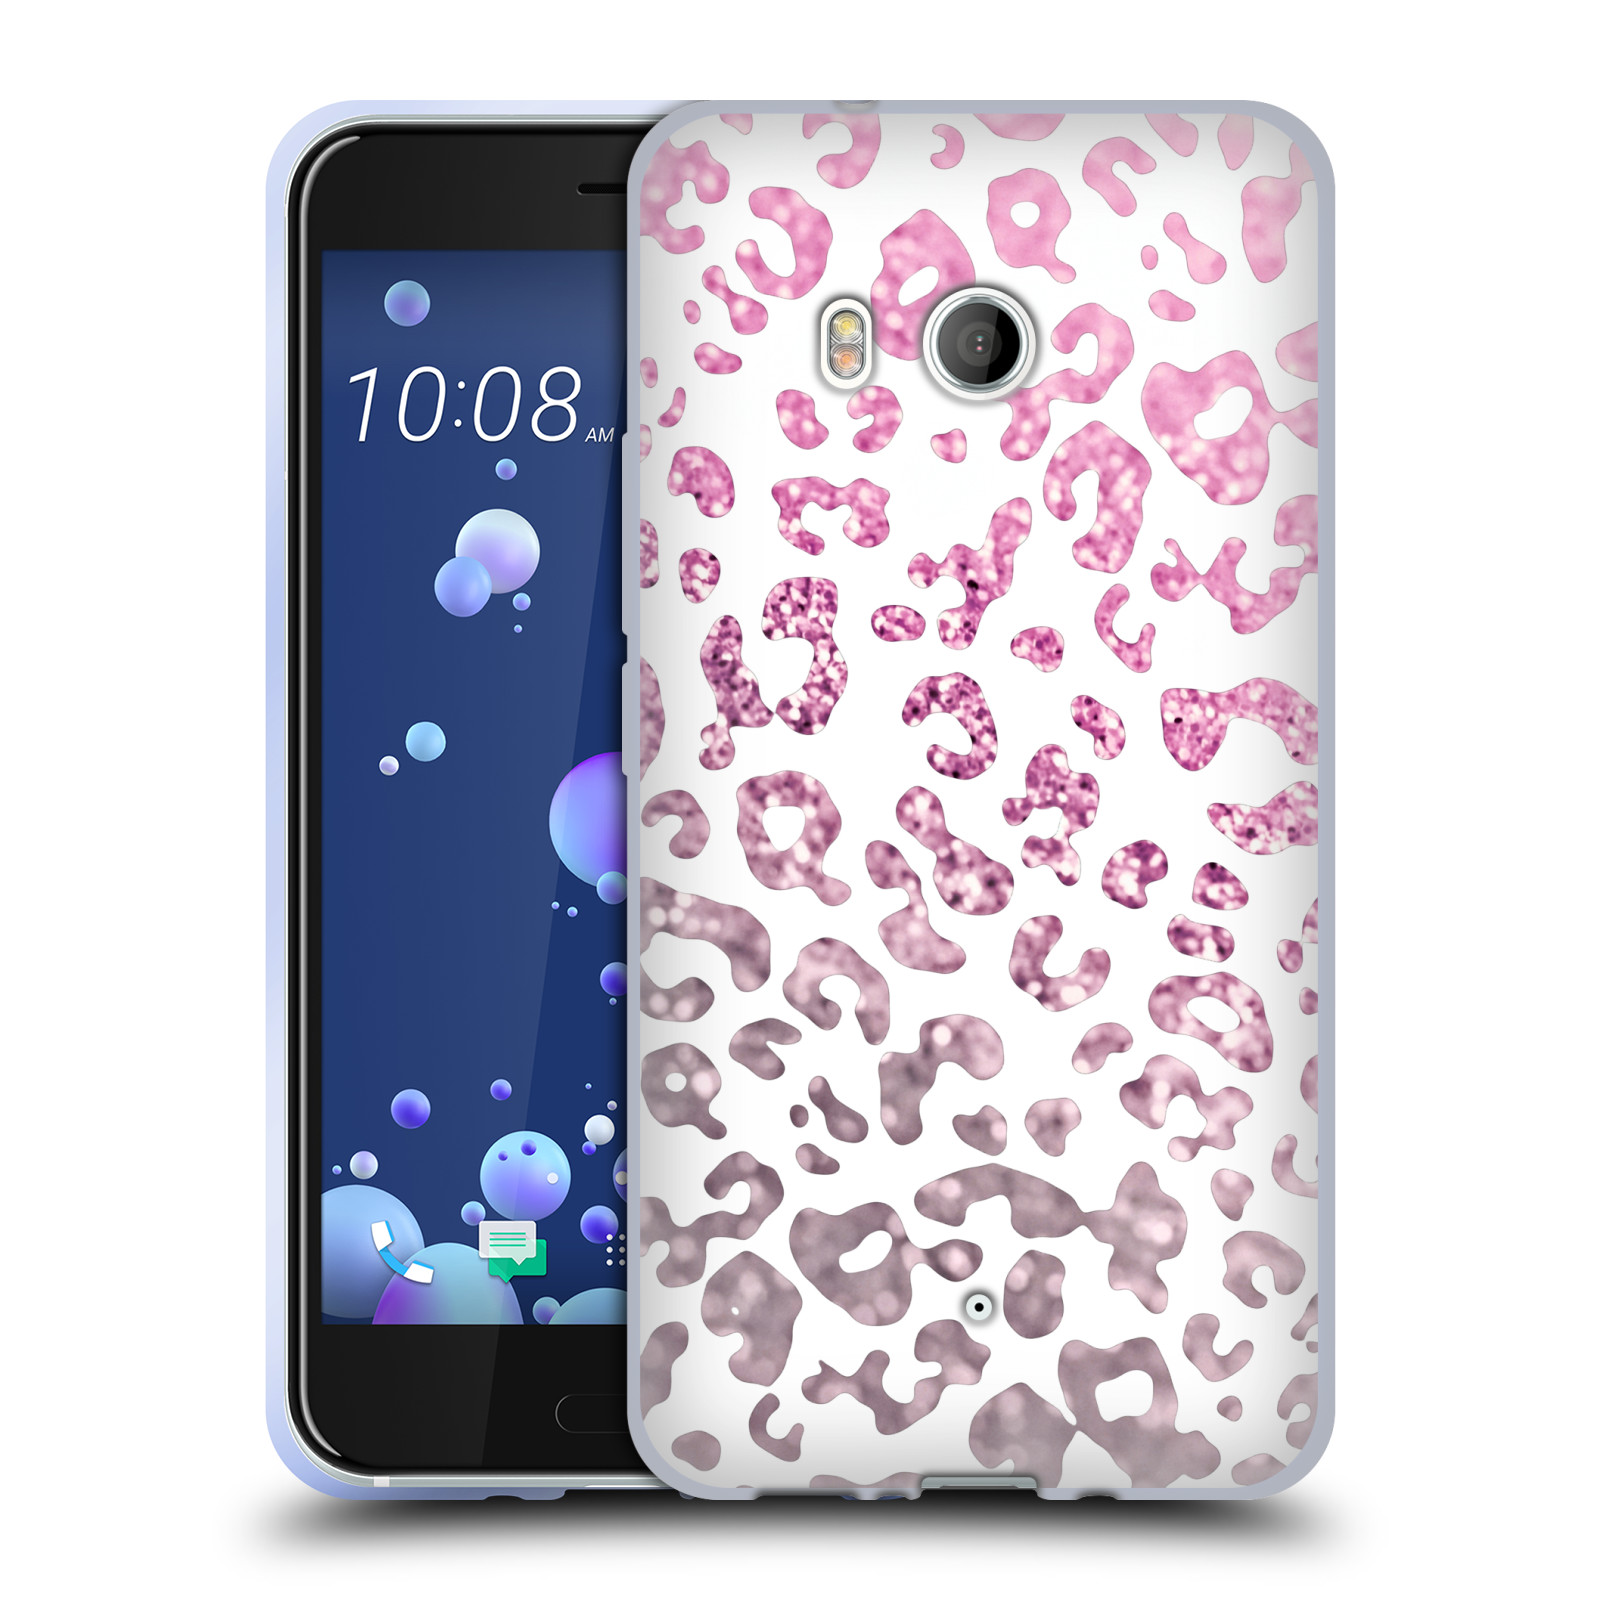 OFFICIAL-MONIKA-STRIGEL-ANIMAL-PRINT-GLITTER-SOFT-GEL-CASE-FOR-HTC-PHONES-1